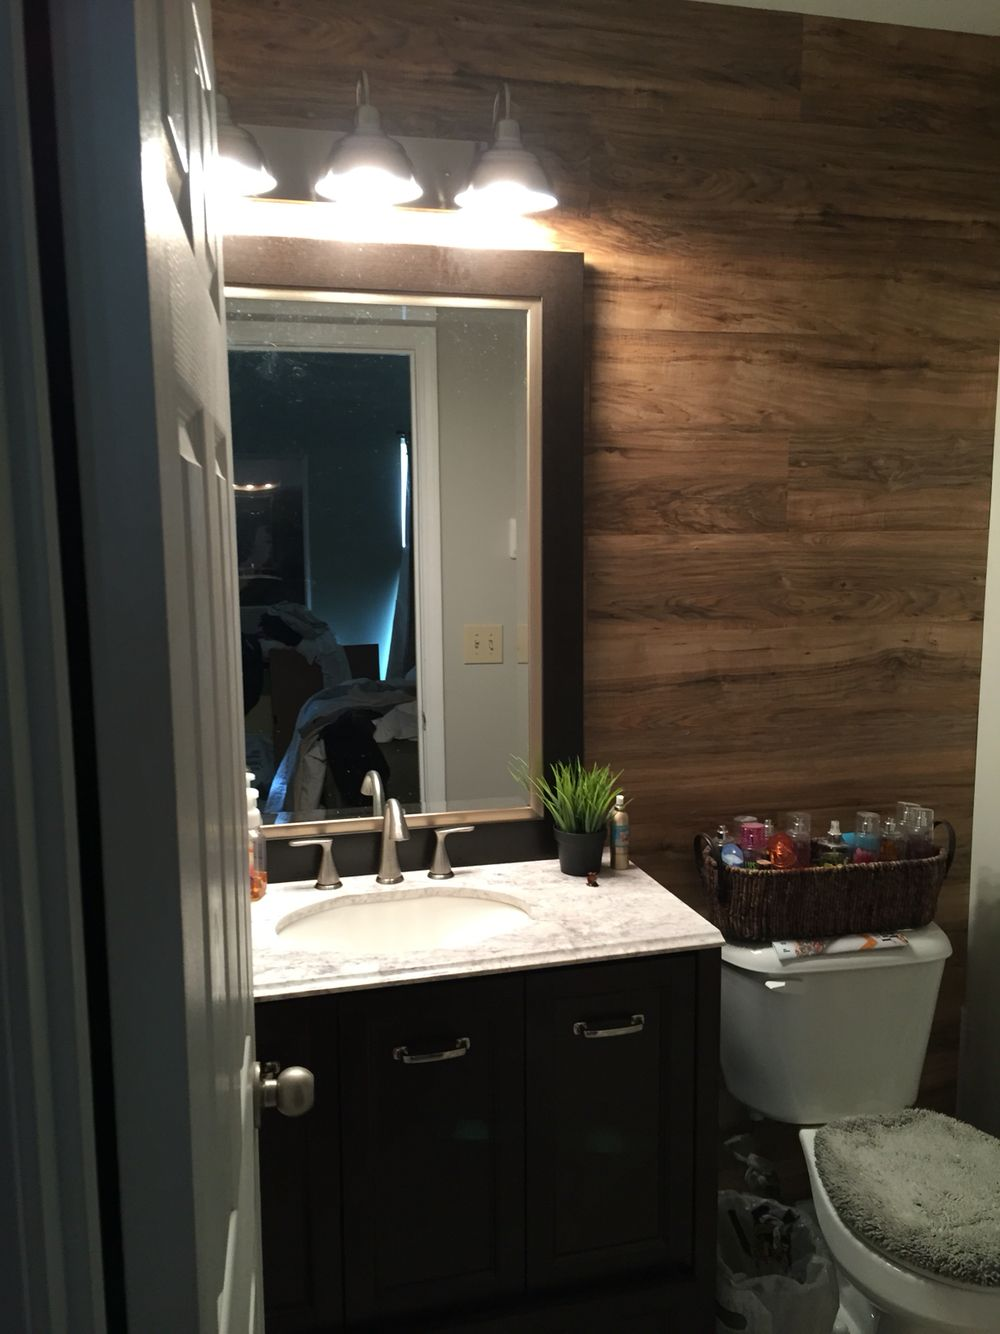 Laminate wood wall farmhouse lighting and new peel and - Laminate tiles for bathroom walls ...